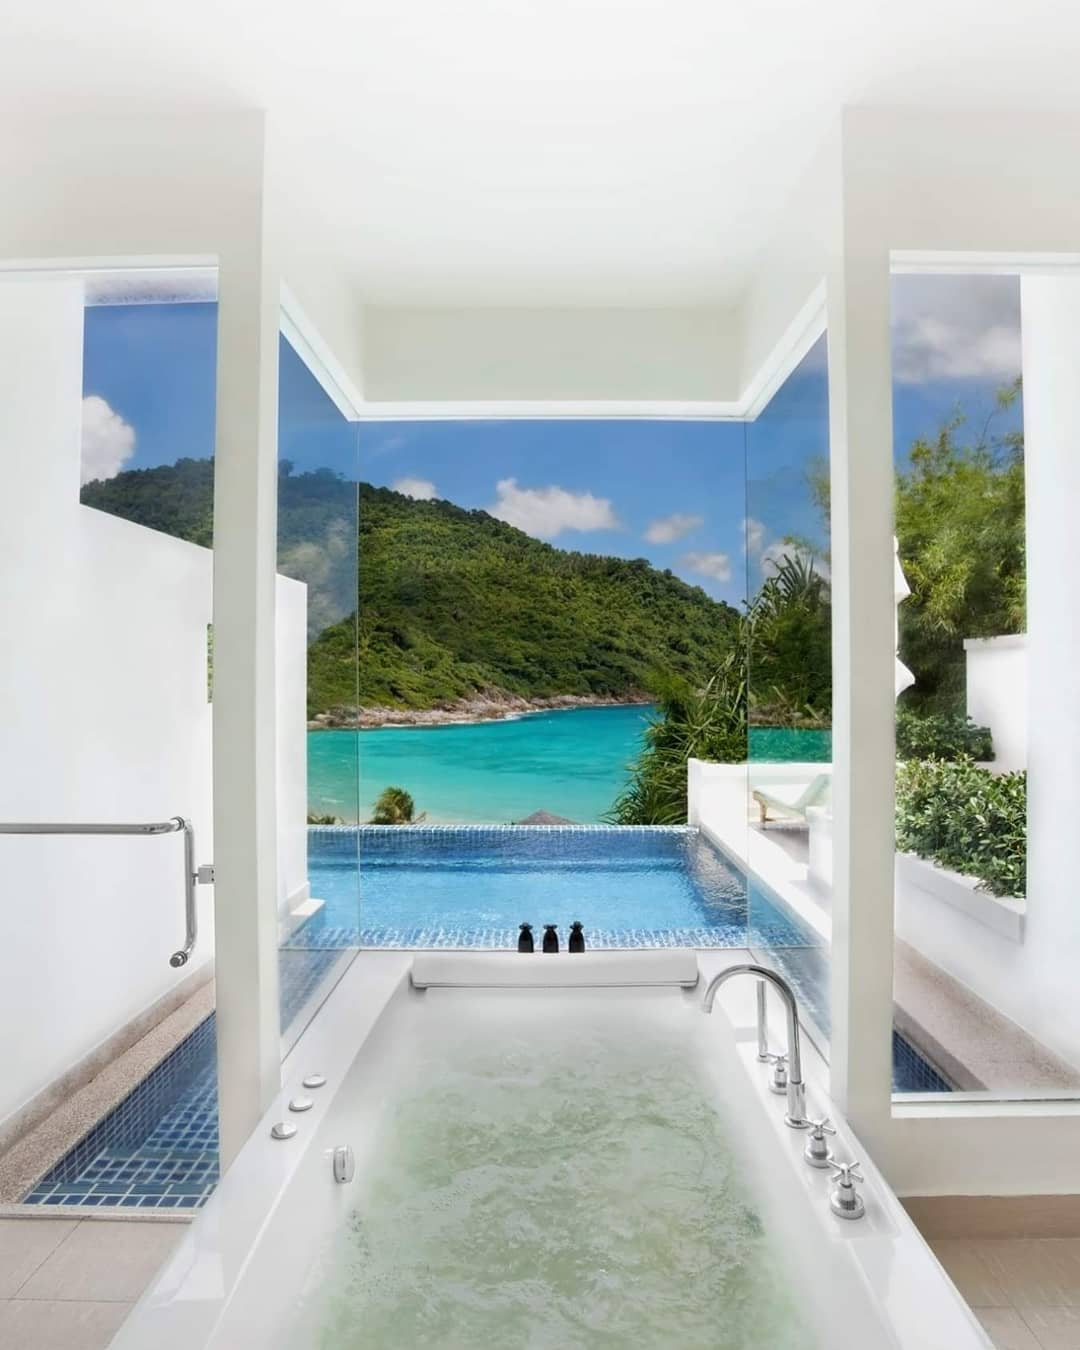 A Baecation in This #BNHoneymoonSpot in Phuket is a Must